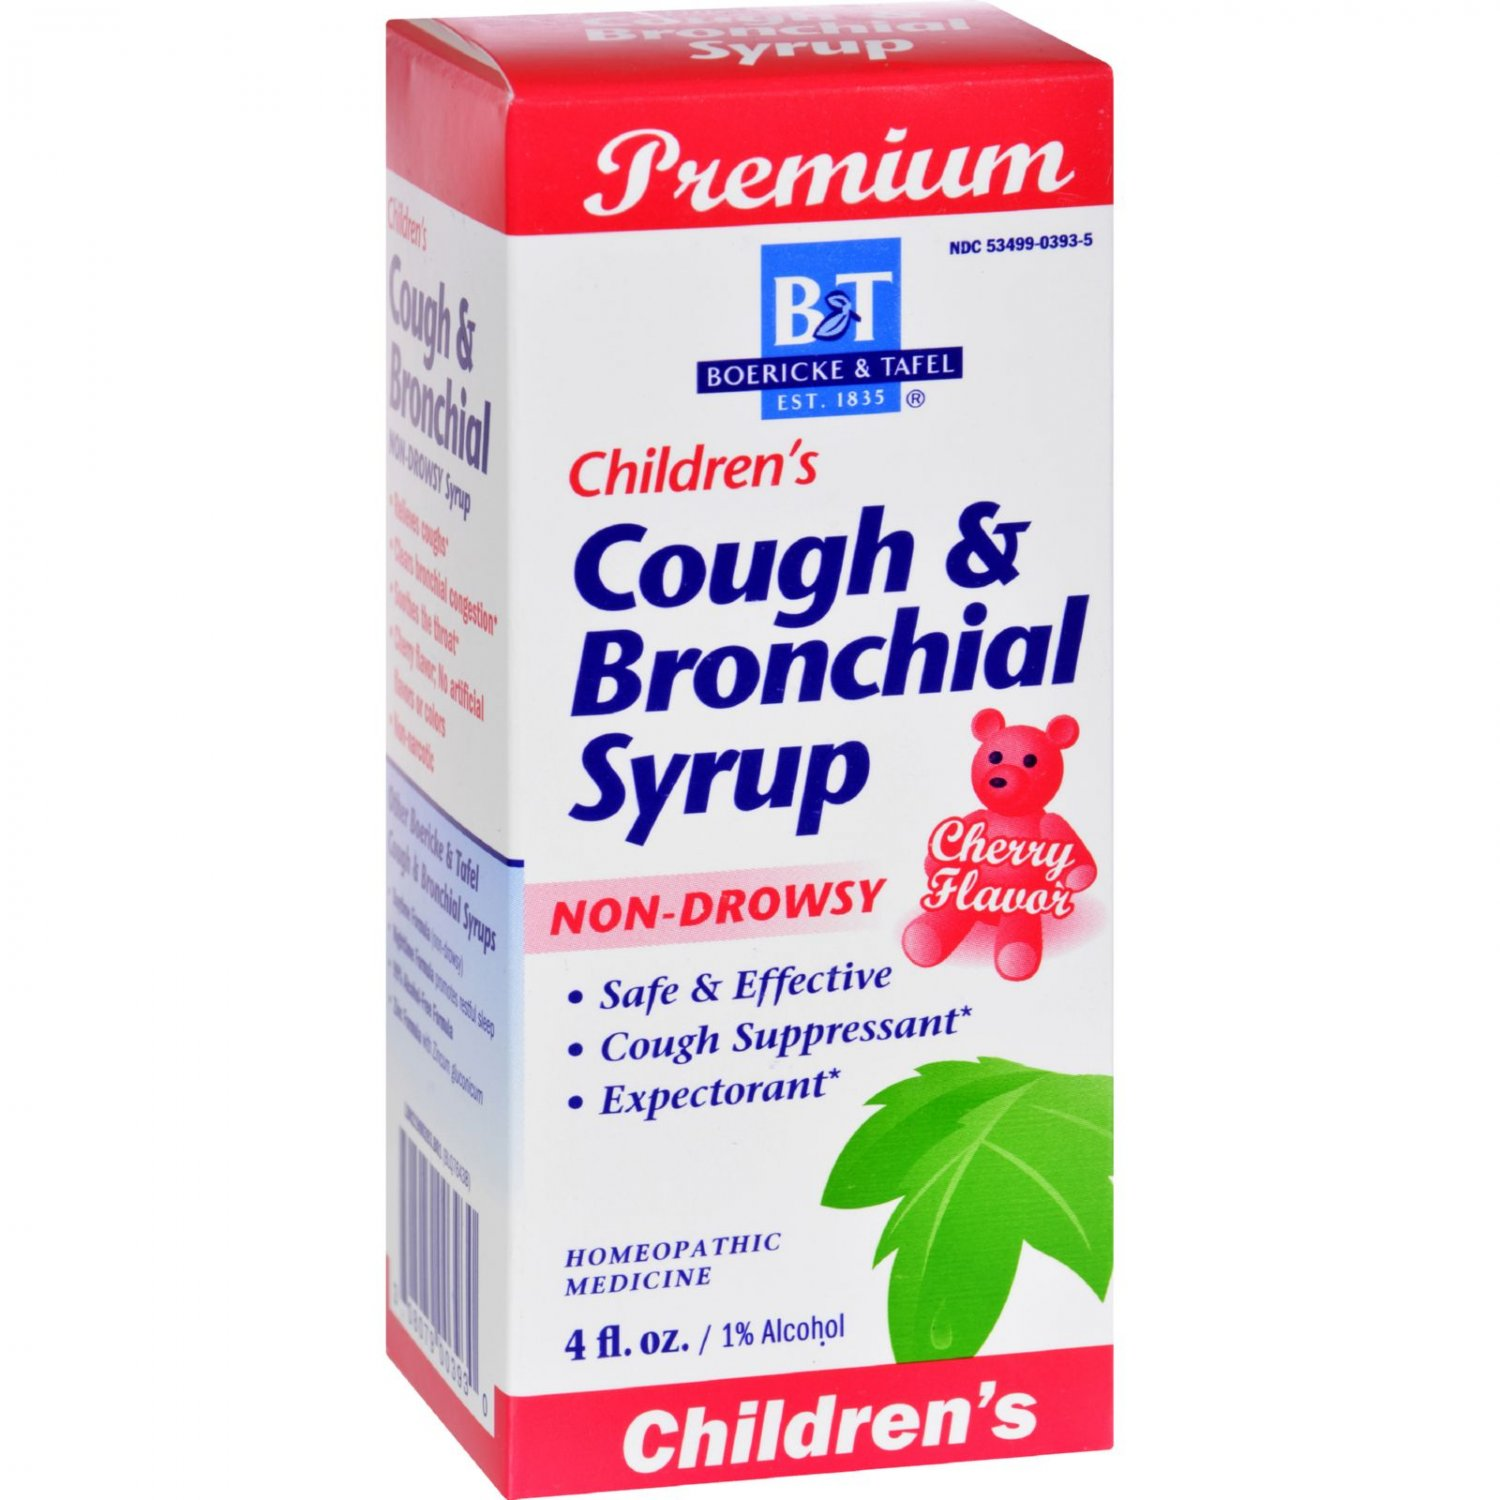 Boericke and Tafel Children's Cough and Bronchial Syrup - 4 fl oz